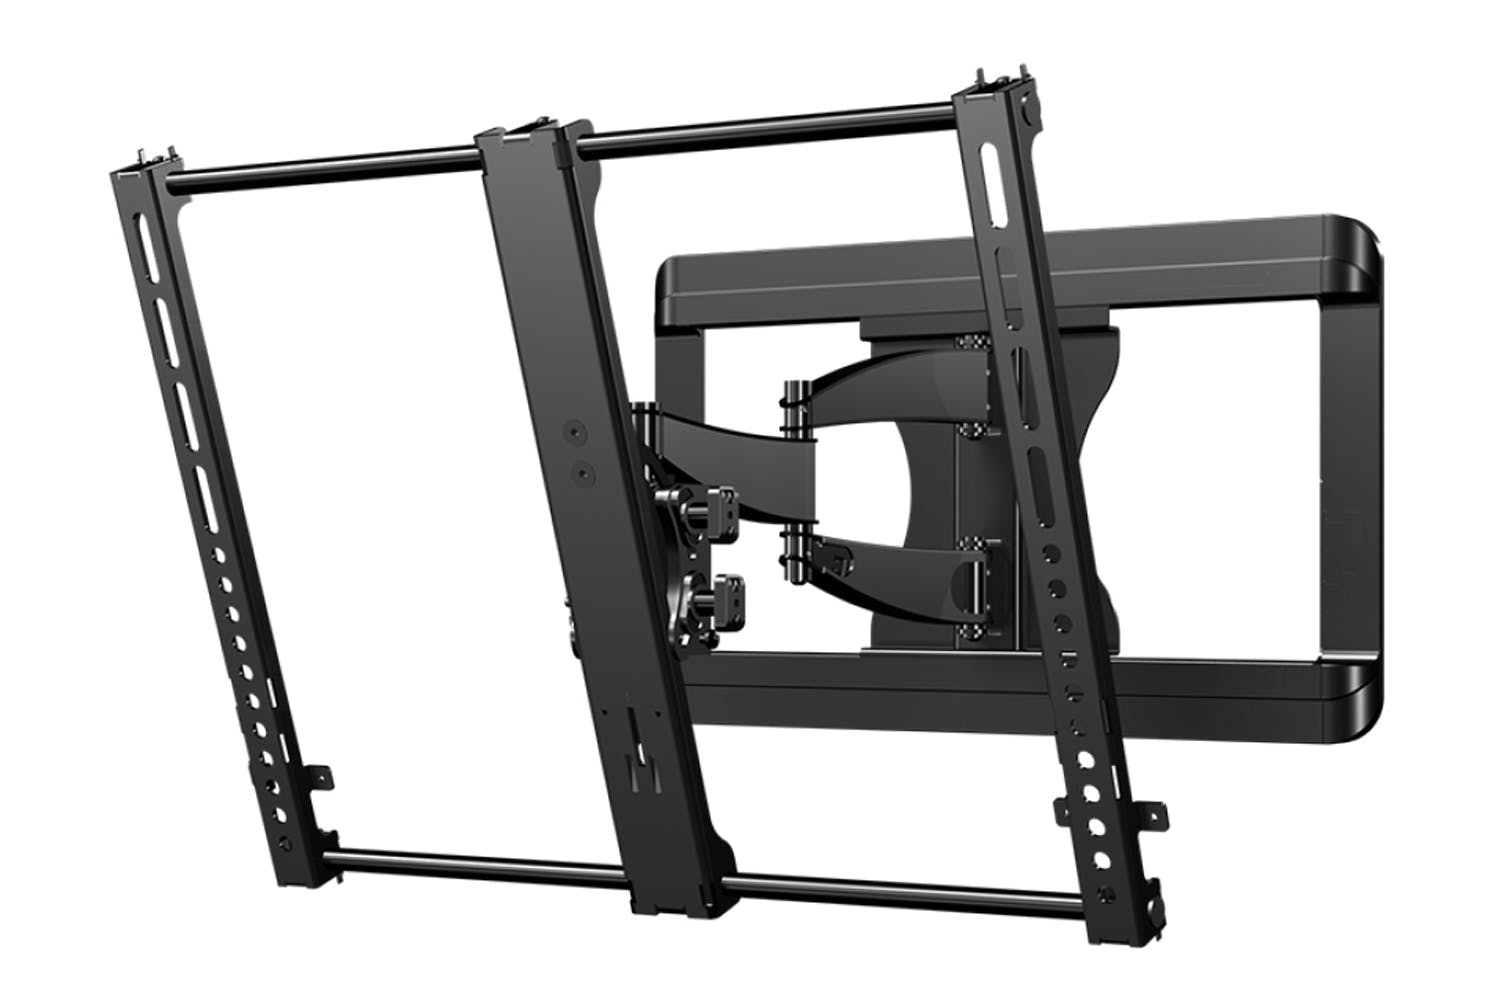 sanus full motion wall mount for 37 55 flat panel tvs vmf620 b2 ireland. Black Bedroom Furniture Sets. Home Design Ideas